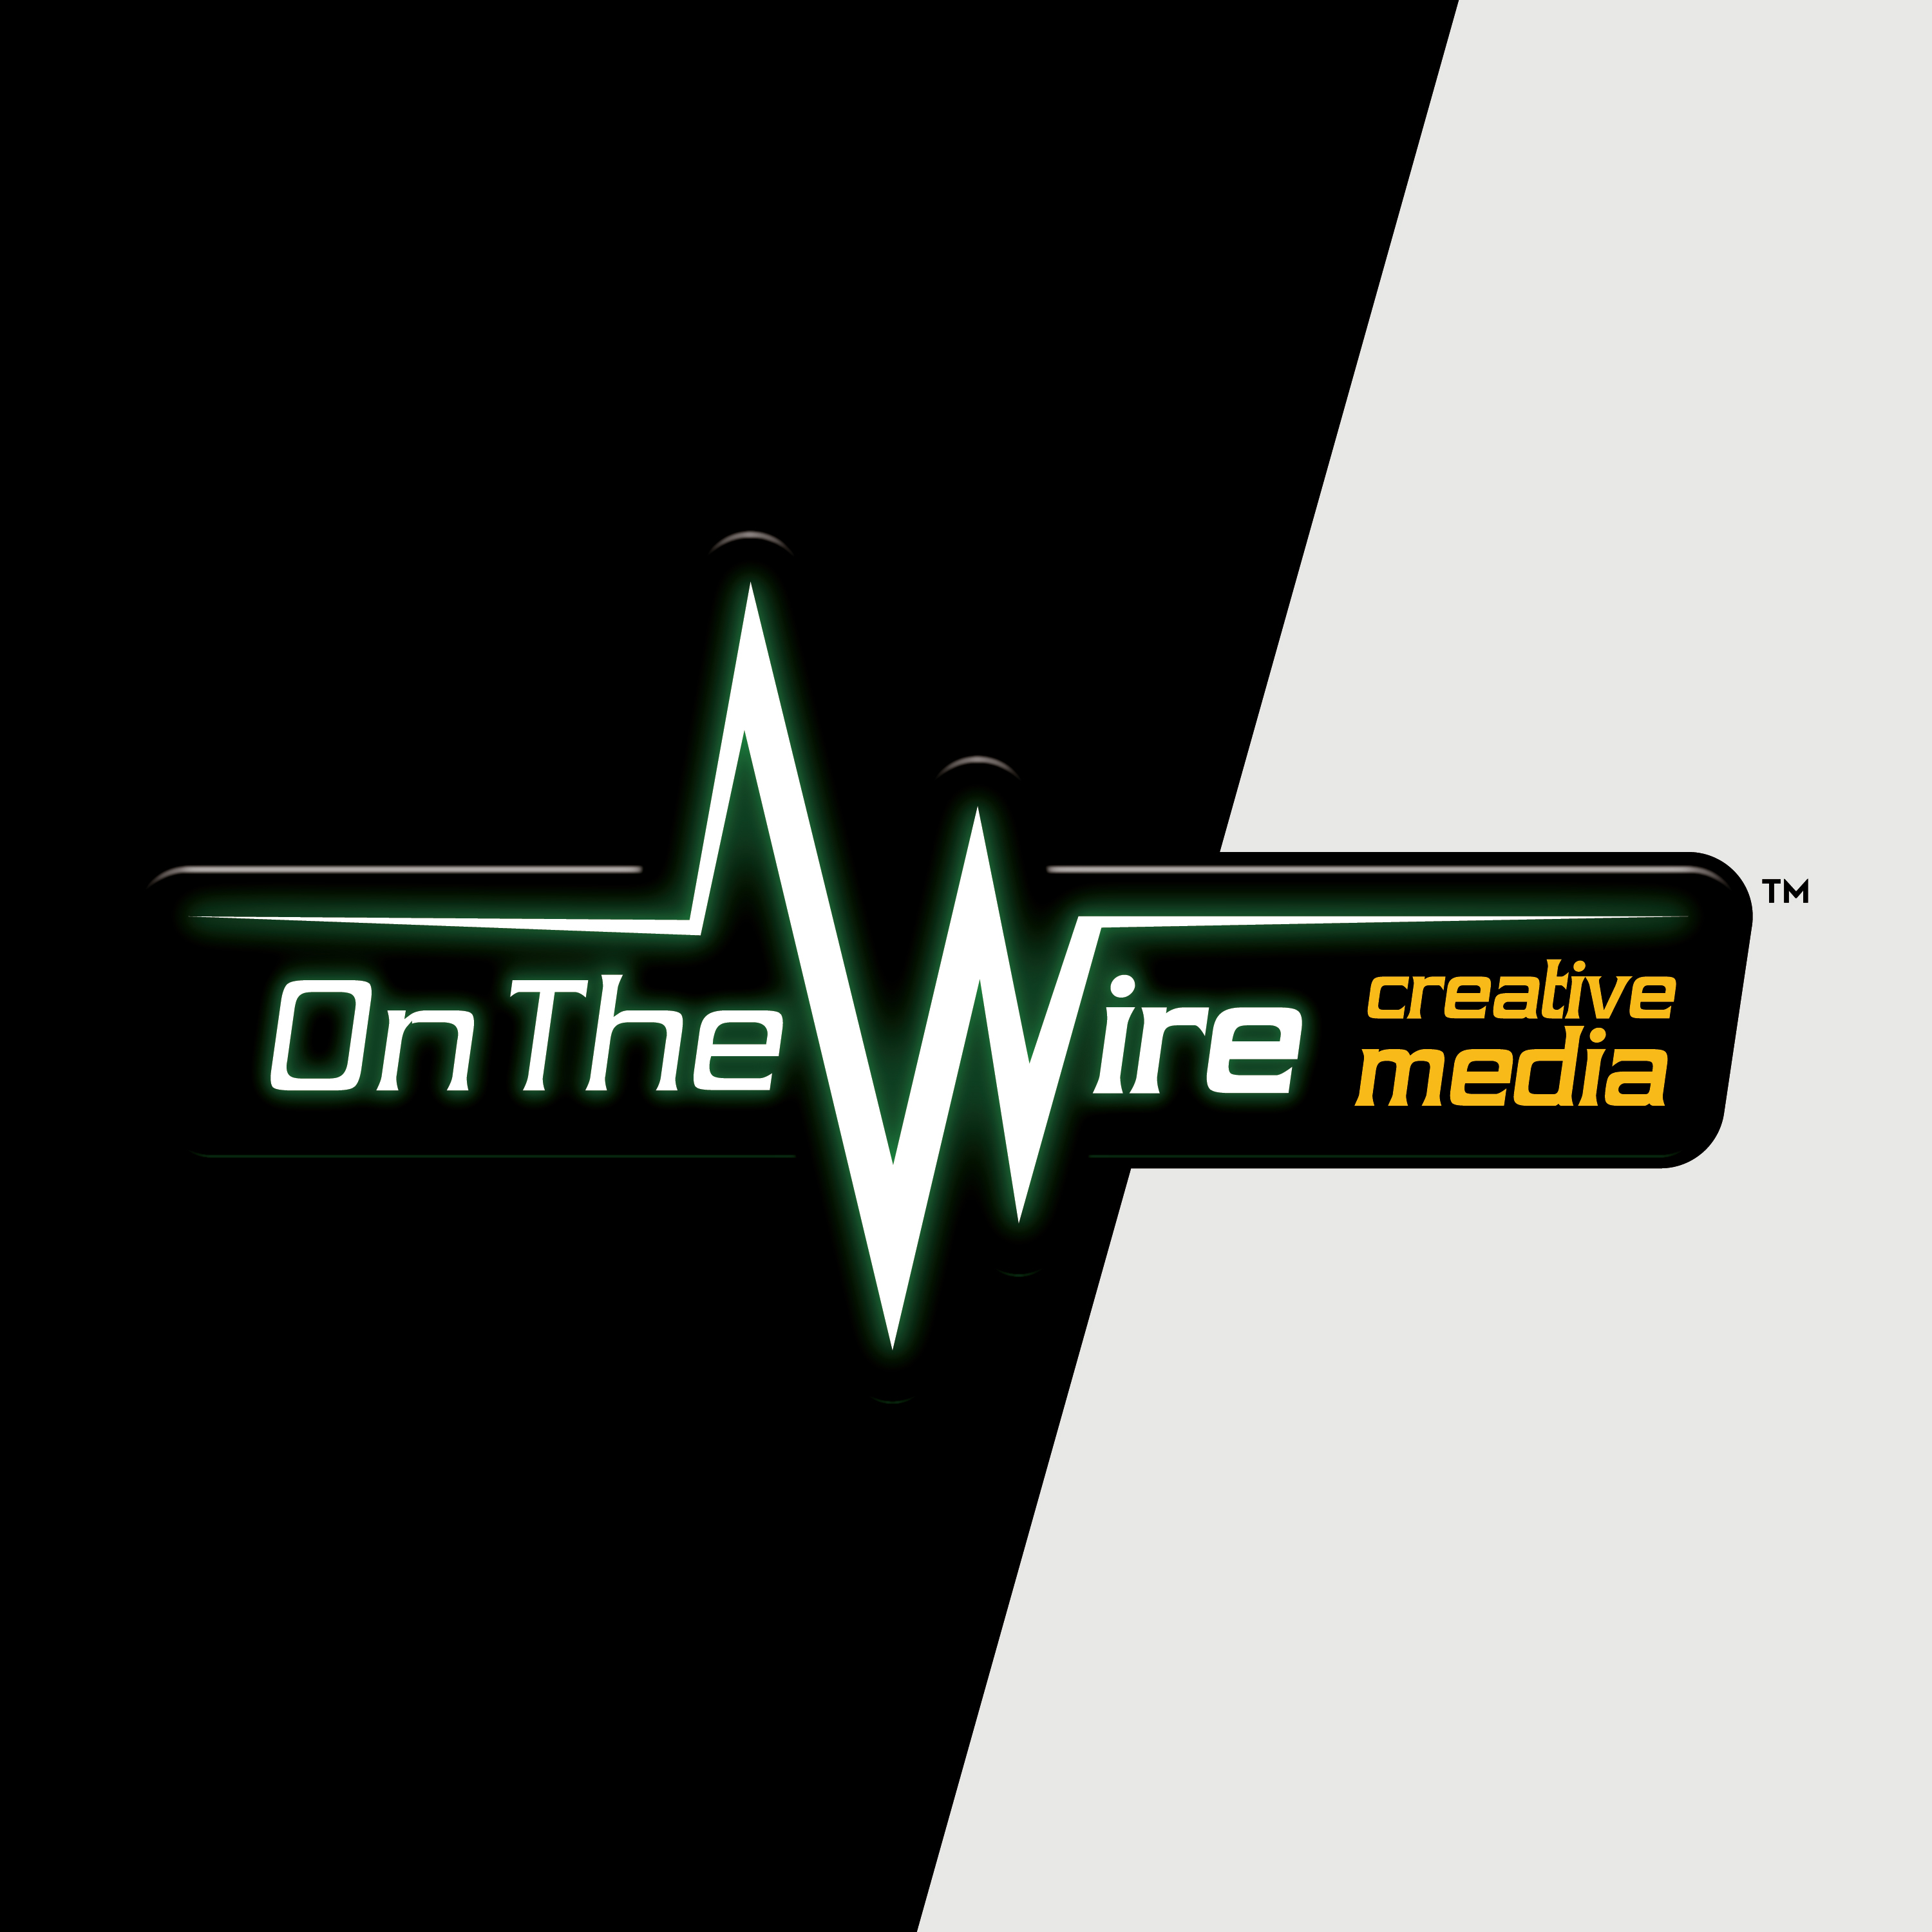 On The Wire Creative Media